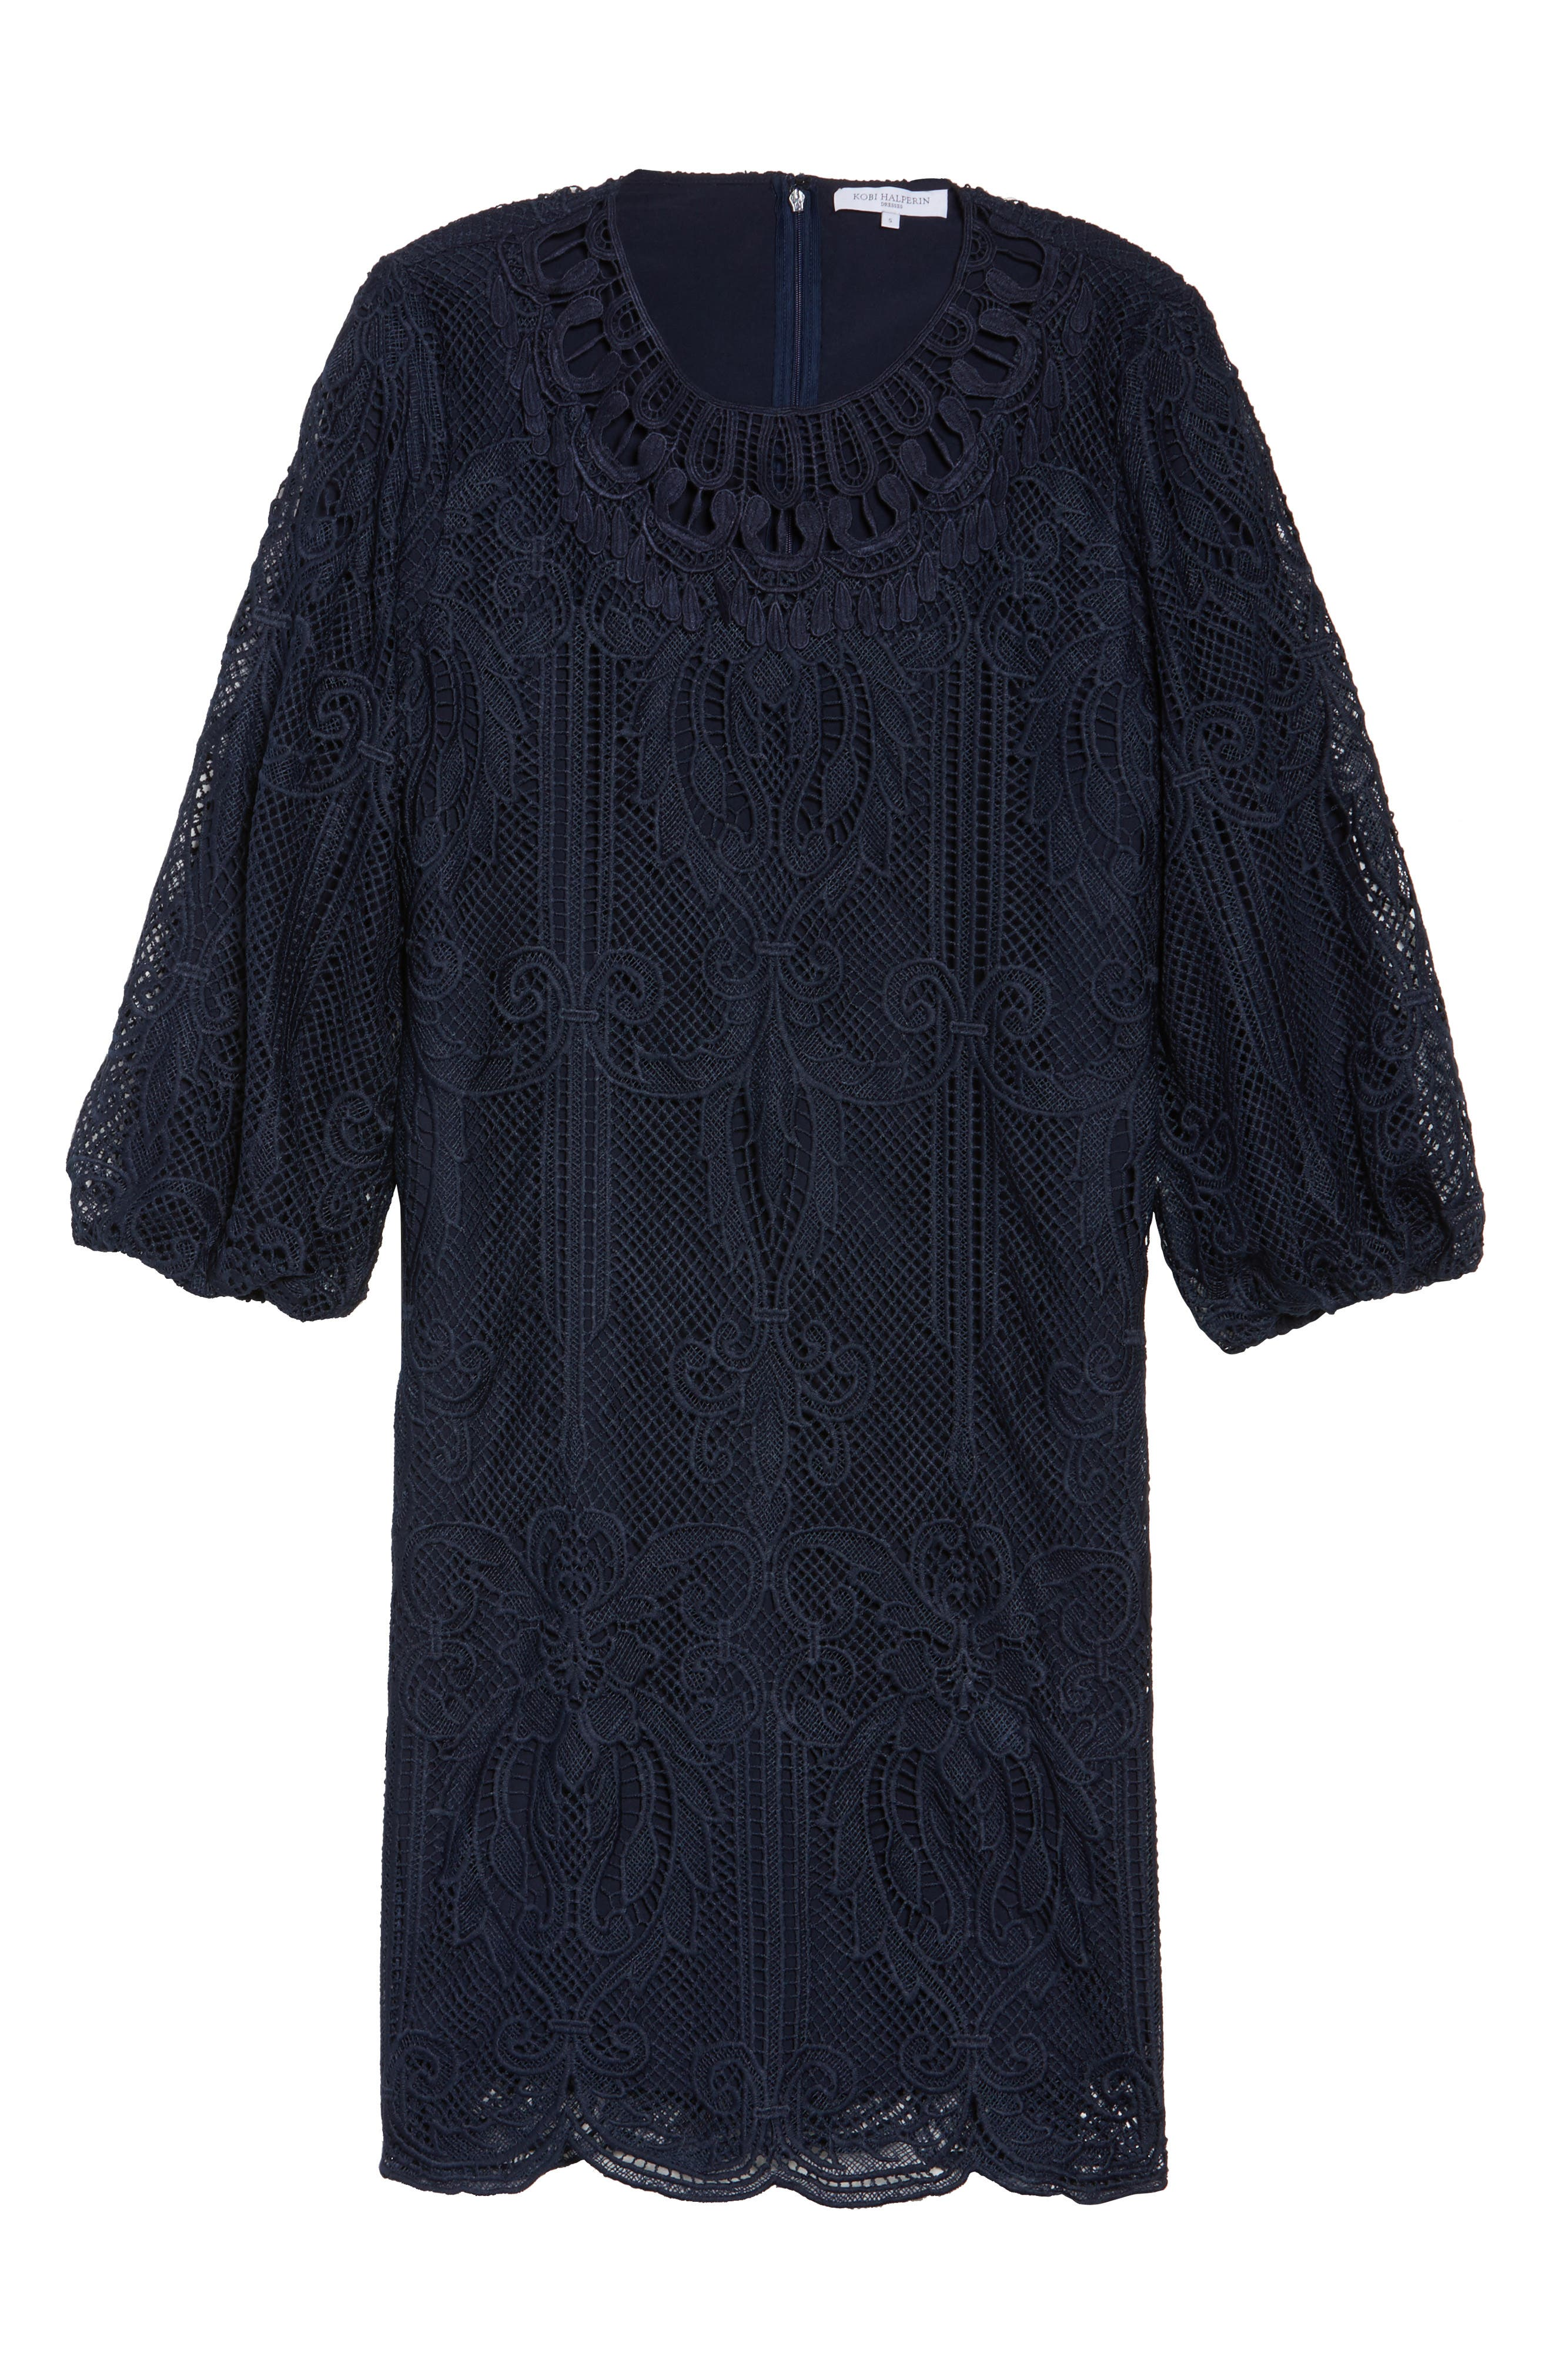 Kandace Lace Shift Dress,                             Alternate thumbnail 12, color,